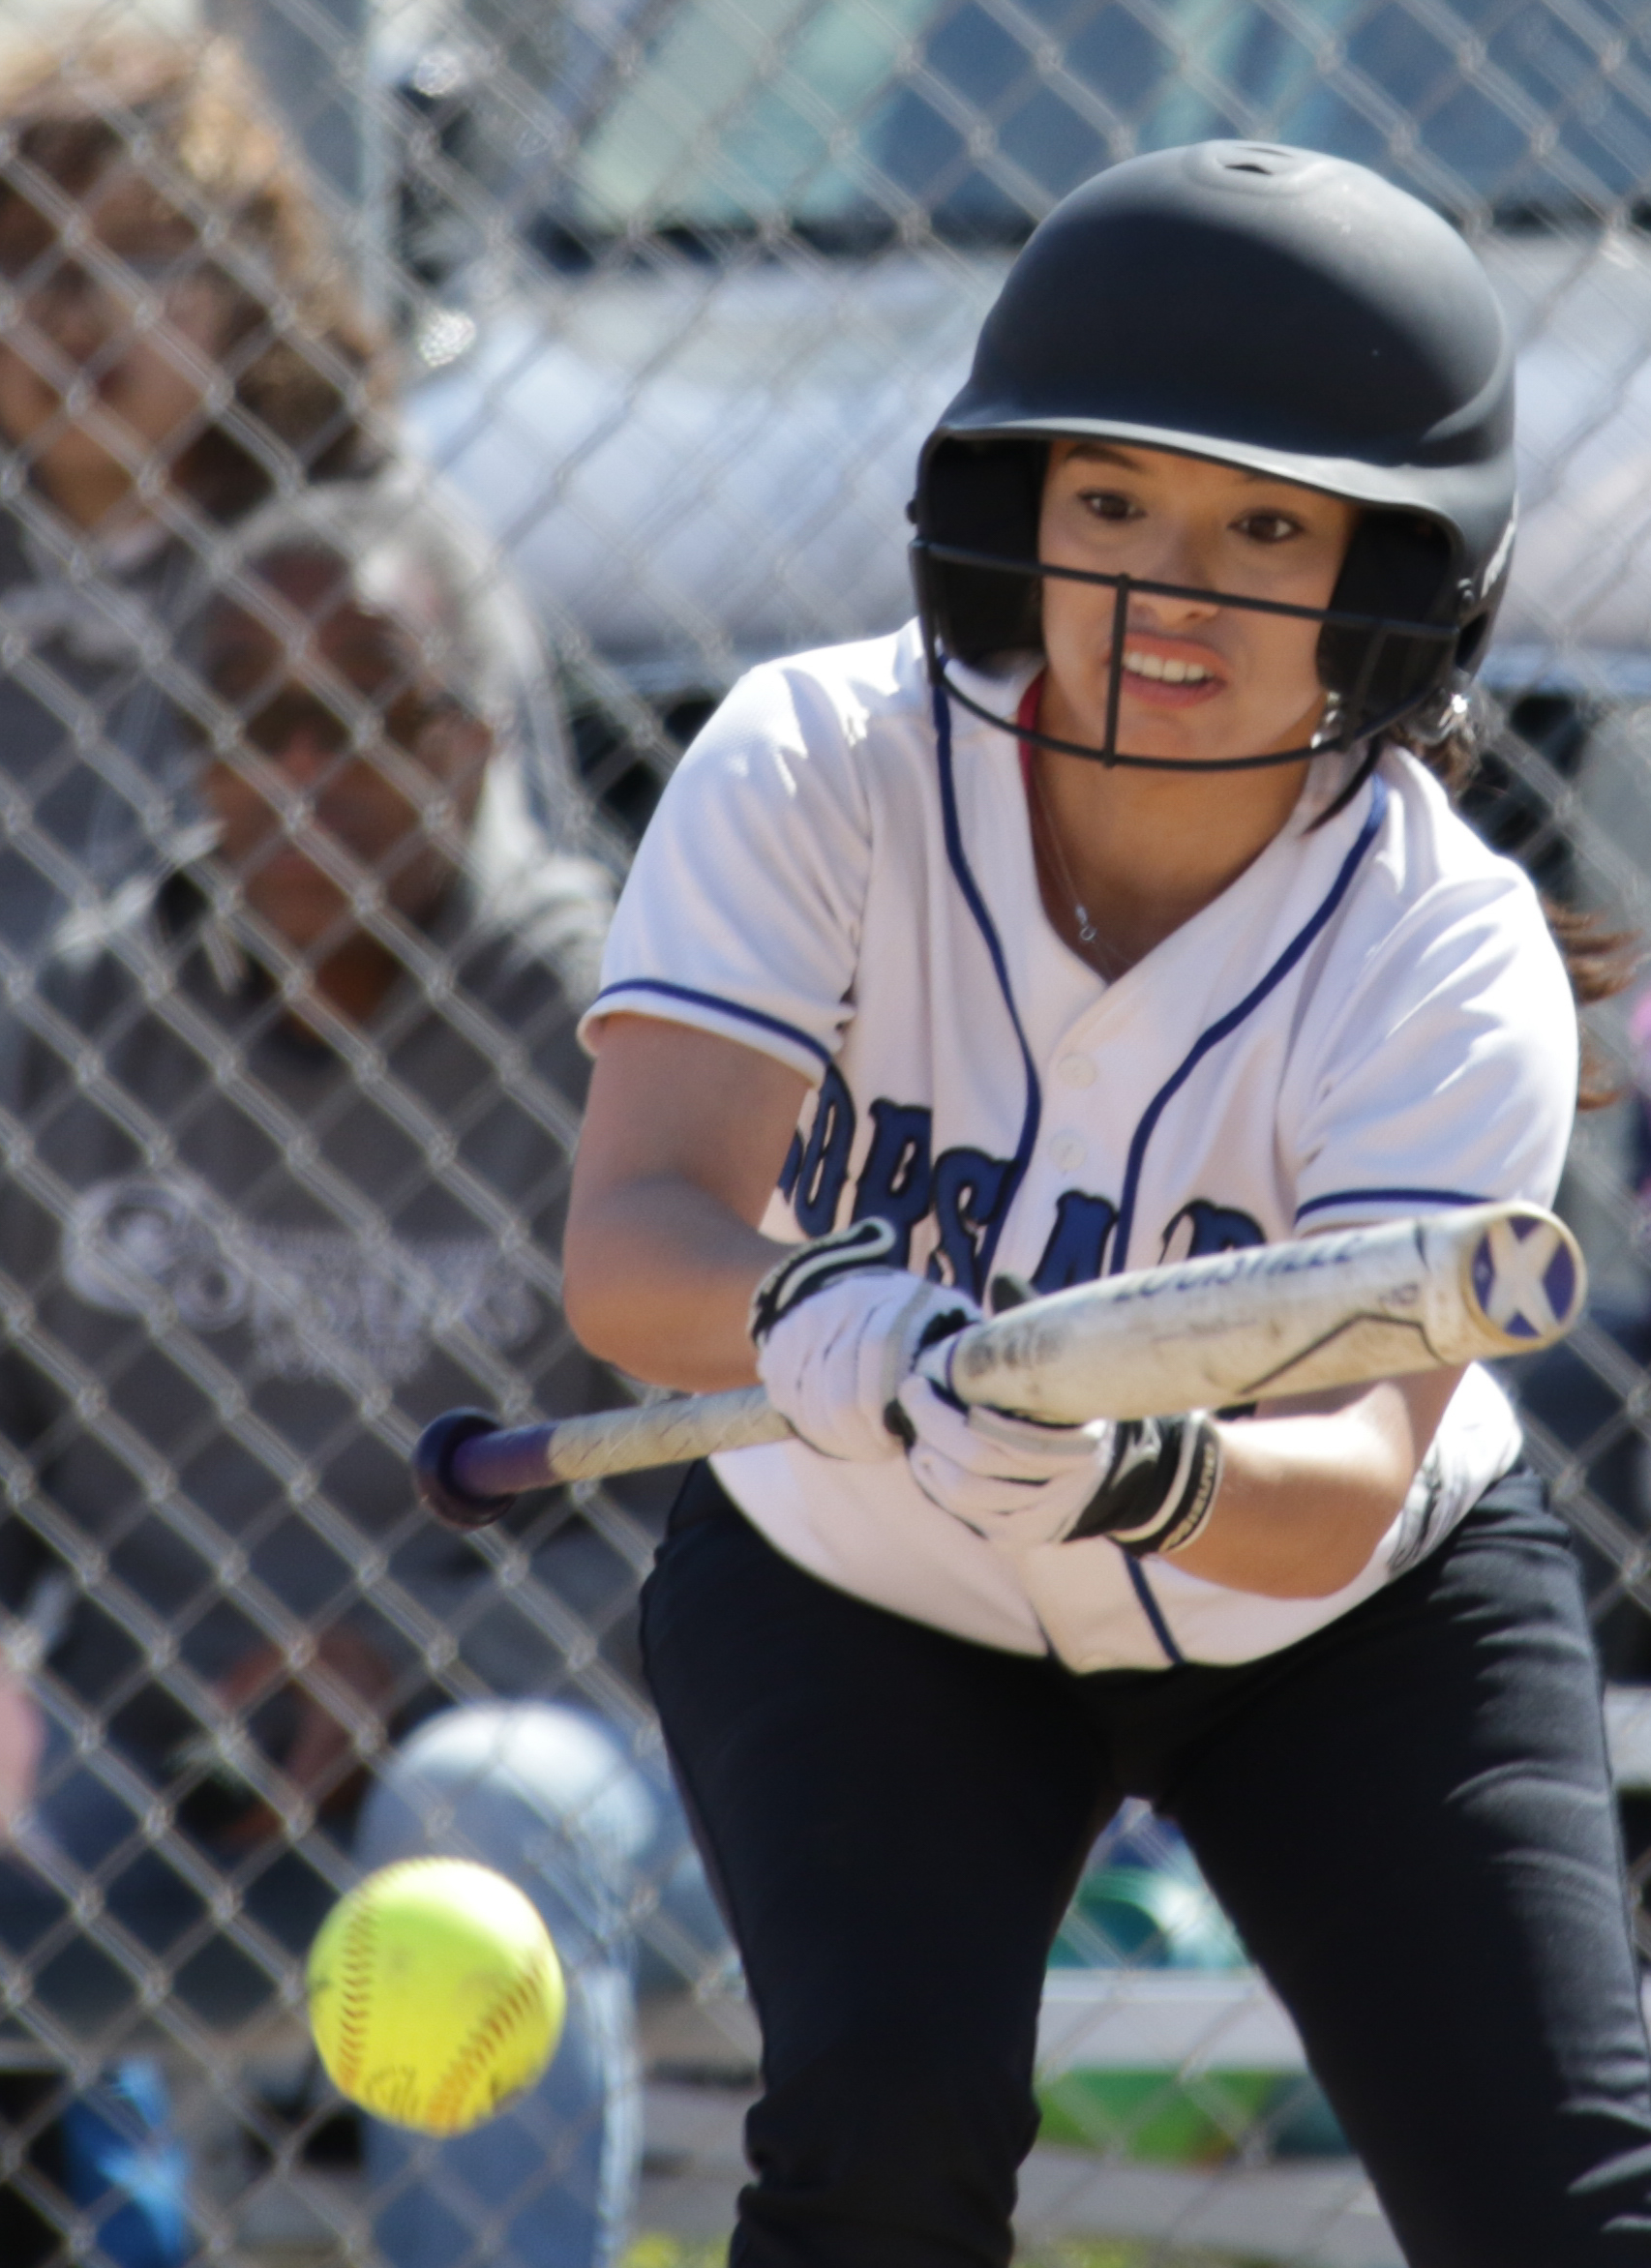 Santa Monica College Corsair softball team batter Aliza Chacon (#3) attempts to bunt the ball during their game against Oxnard College on thursday, April 19th, 2018. The game ended 3-2 in favor for Santa Monica College. (Santa Monica, California, Thursday April 19th, 2018) (Ashutosh  Bikram Singh/Corsair Photo)